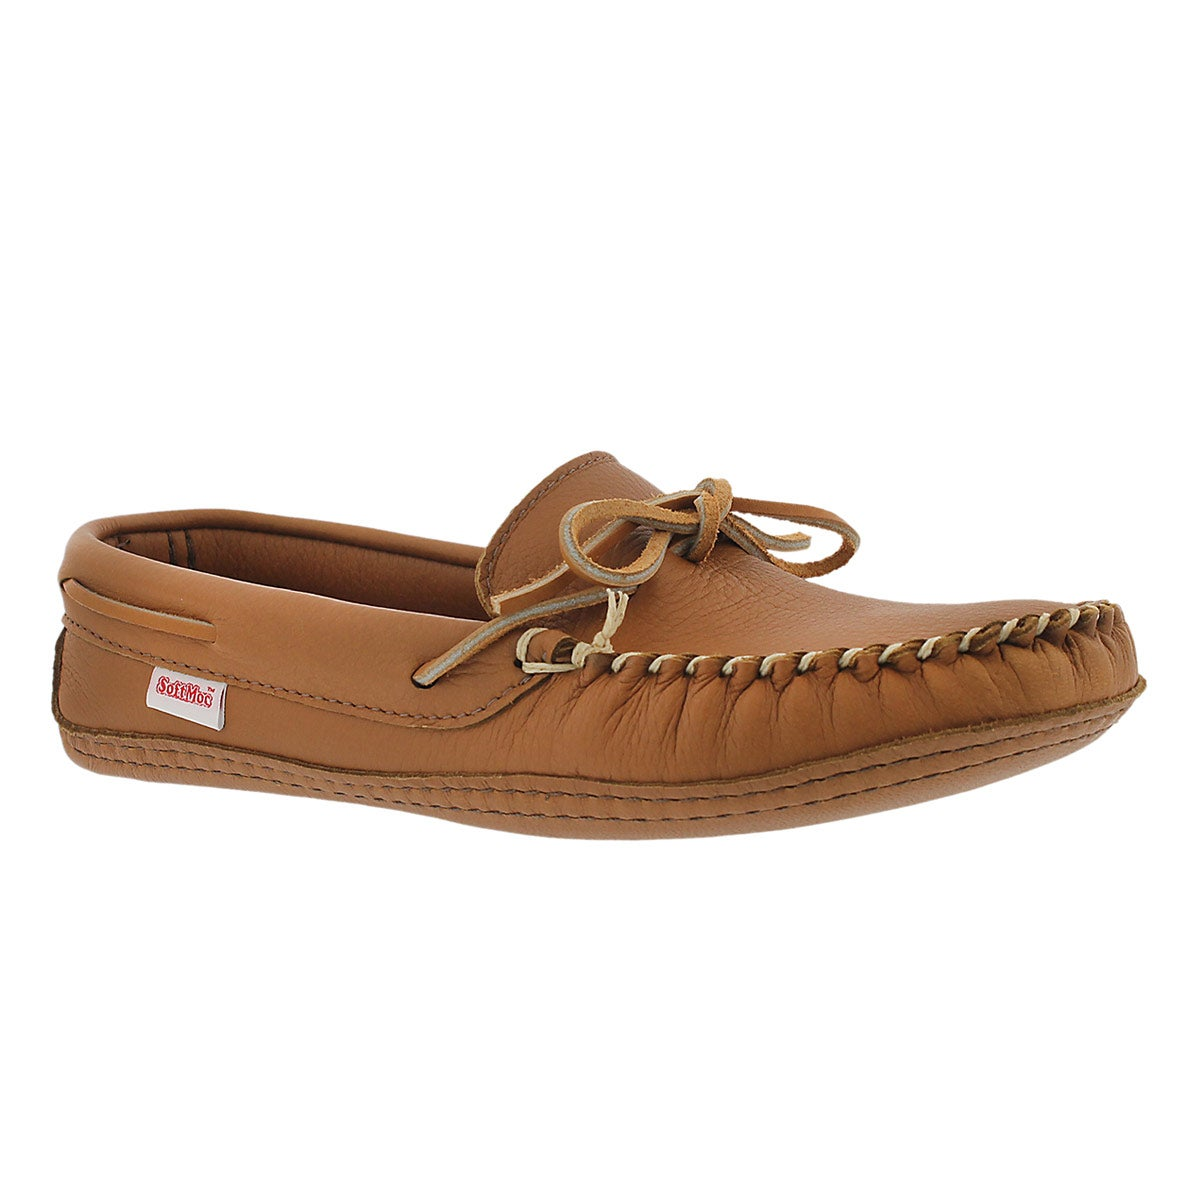 Men's 3000 camel deerskin leather moccasins